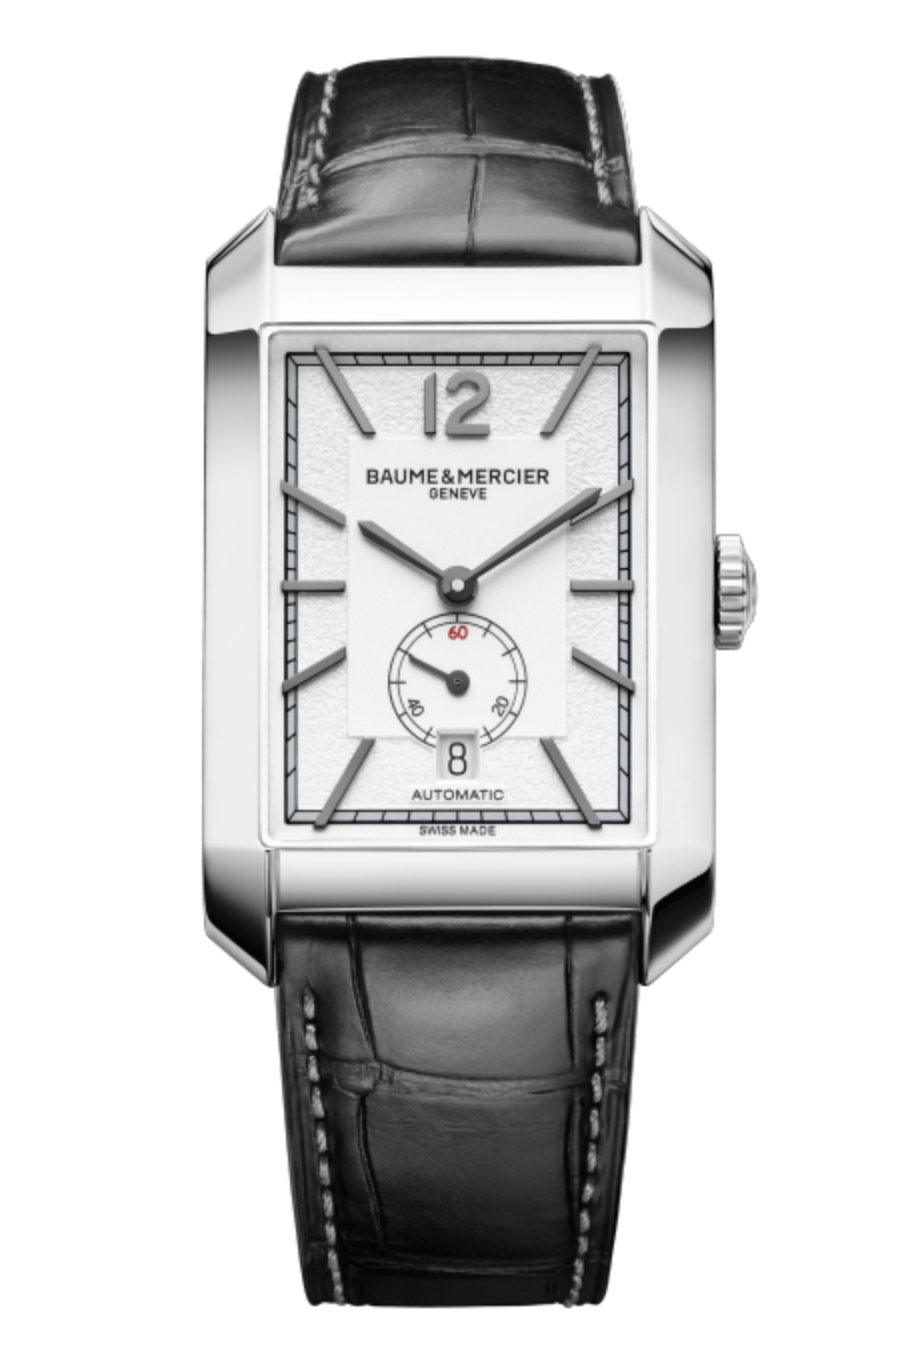 Baume & Mercier Hampton Men's Steel Watch, with an Opaline Silver Dial, Black Alligator Strap and Automatic Movement 